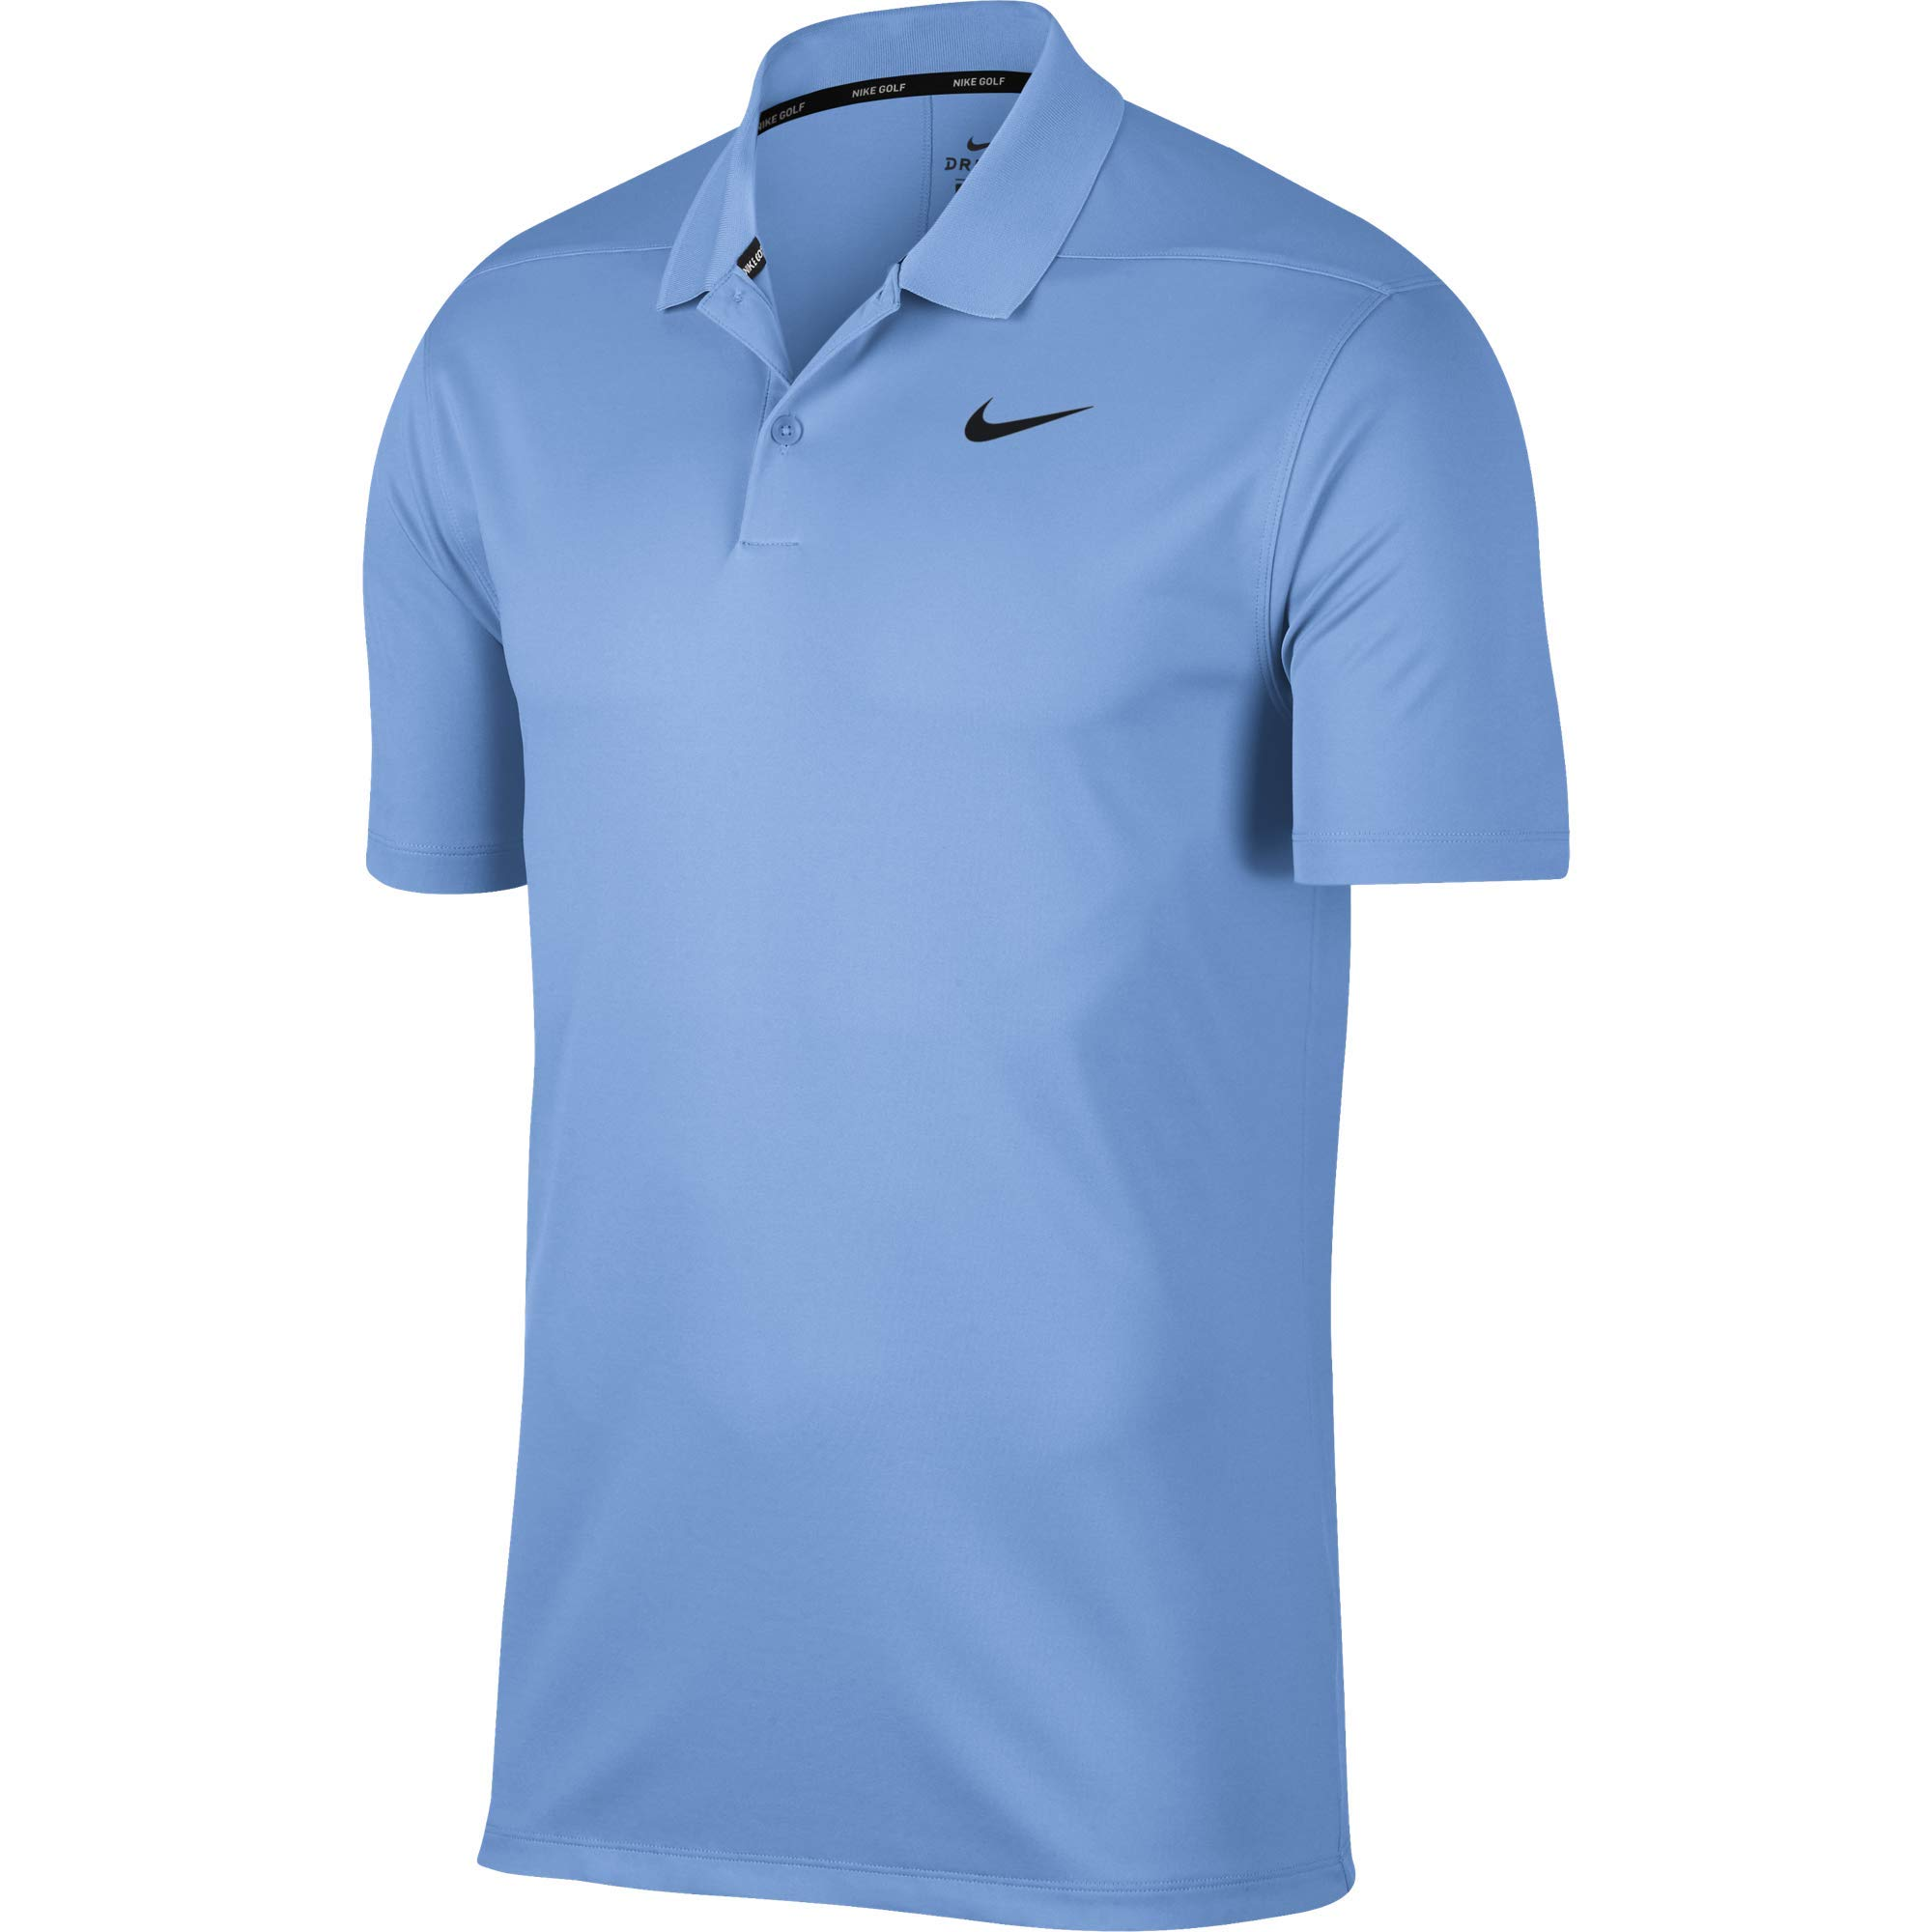 Nike Men's Dry Victory Polo Solid Left Chest, University Blue/Black, Large by Nike